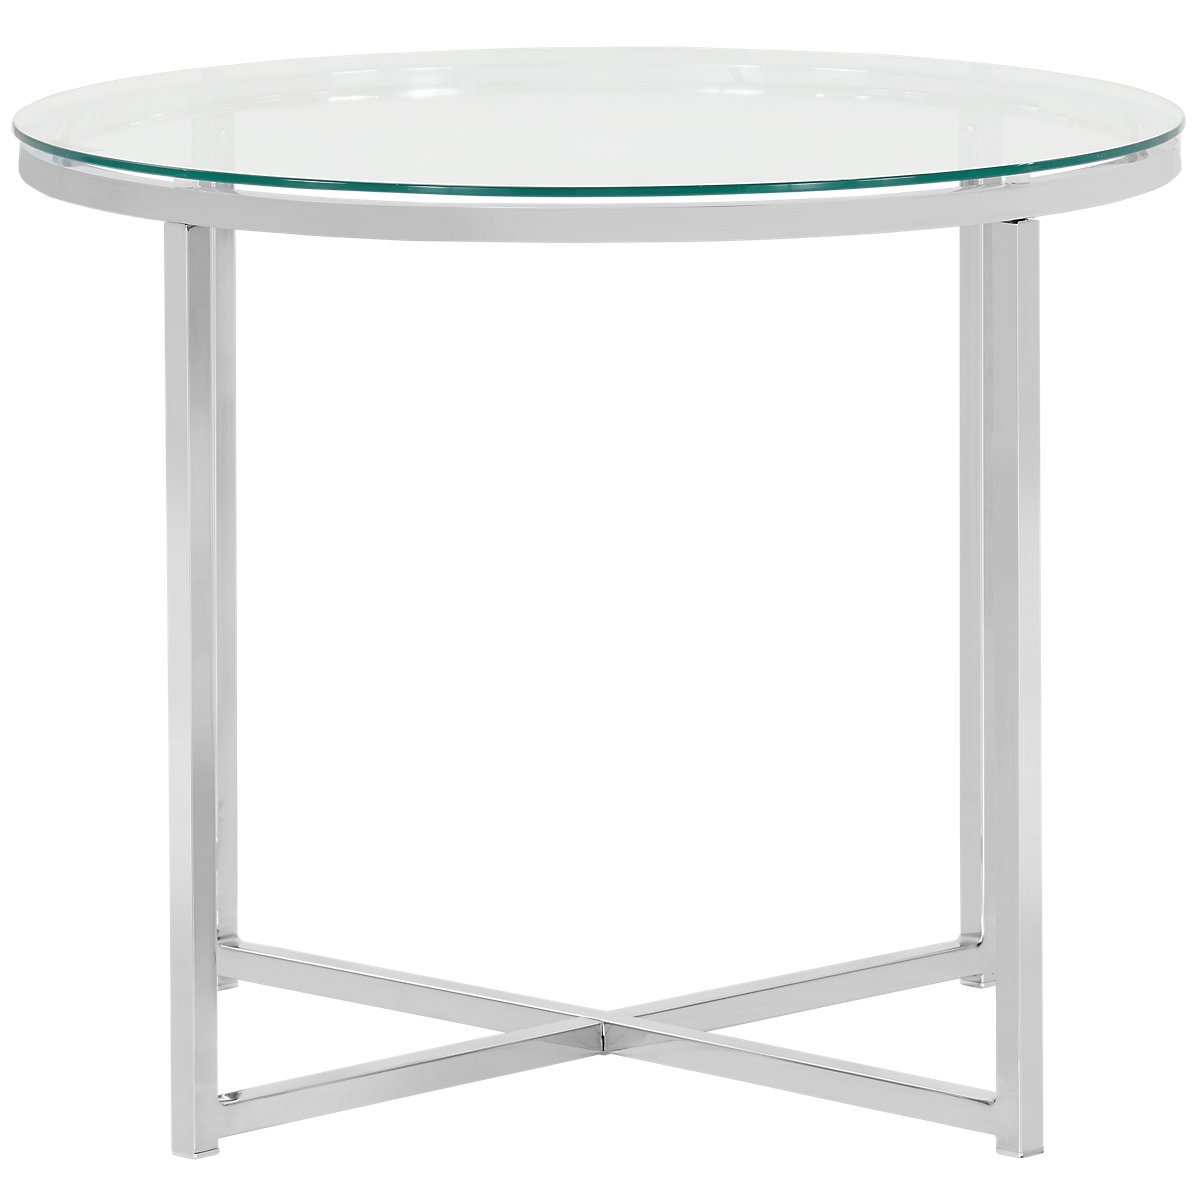 kross clear glass round end table tables drawing room furniture under sofa leather set black modern brands outside ethan allen nightstand maple dark brown stain london ontario